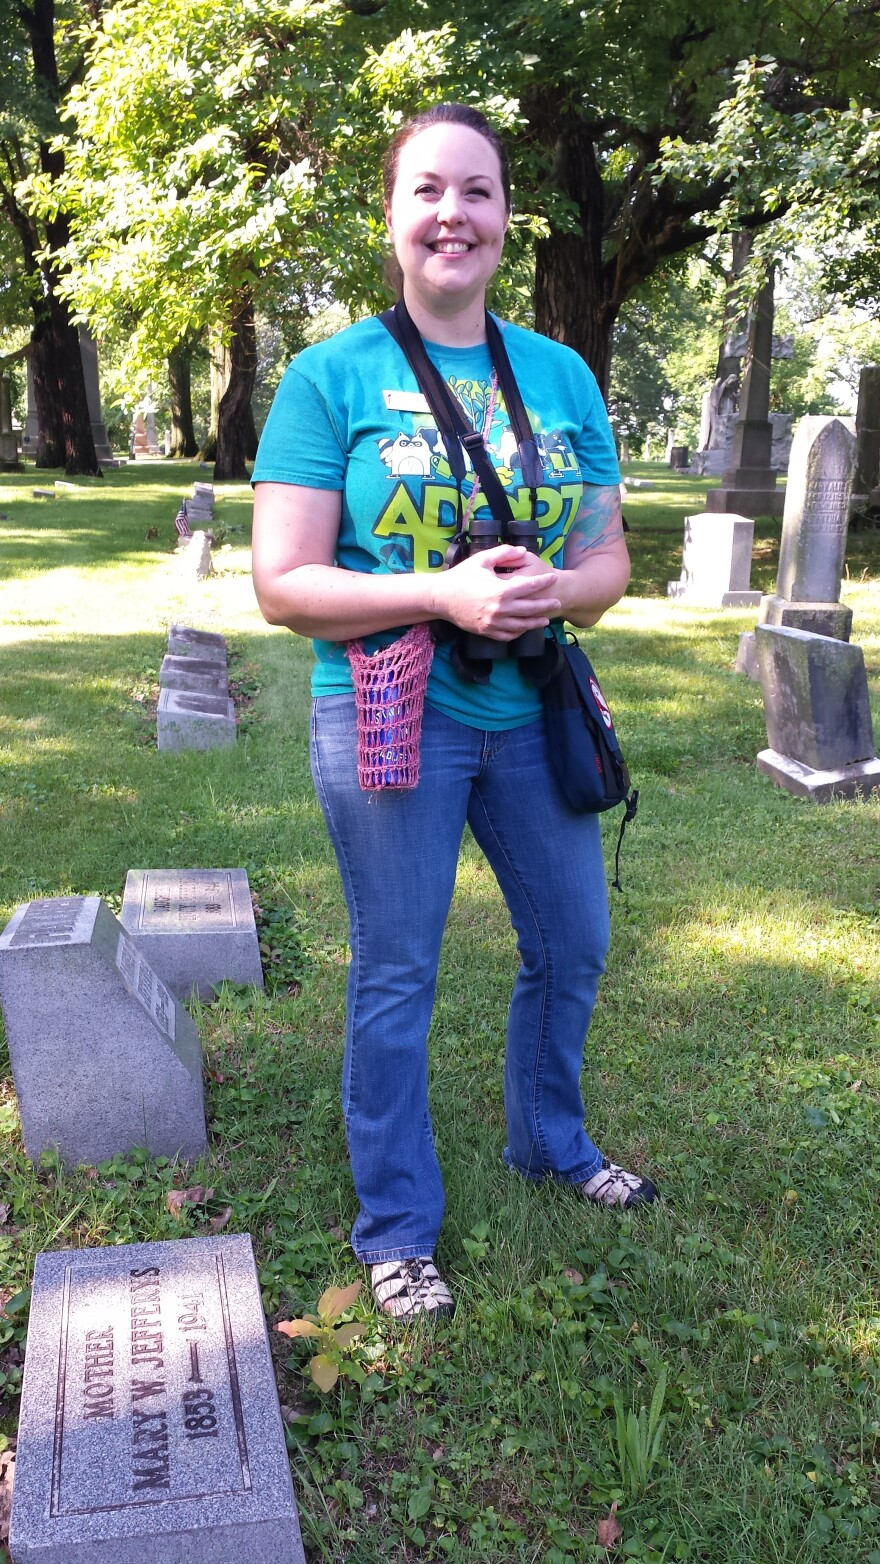 Amanda Lawson is a certified Ohio volunteer naturalist who leads birdwatching tours of Woodland Cemetery